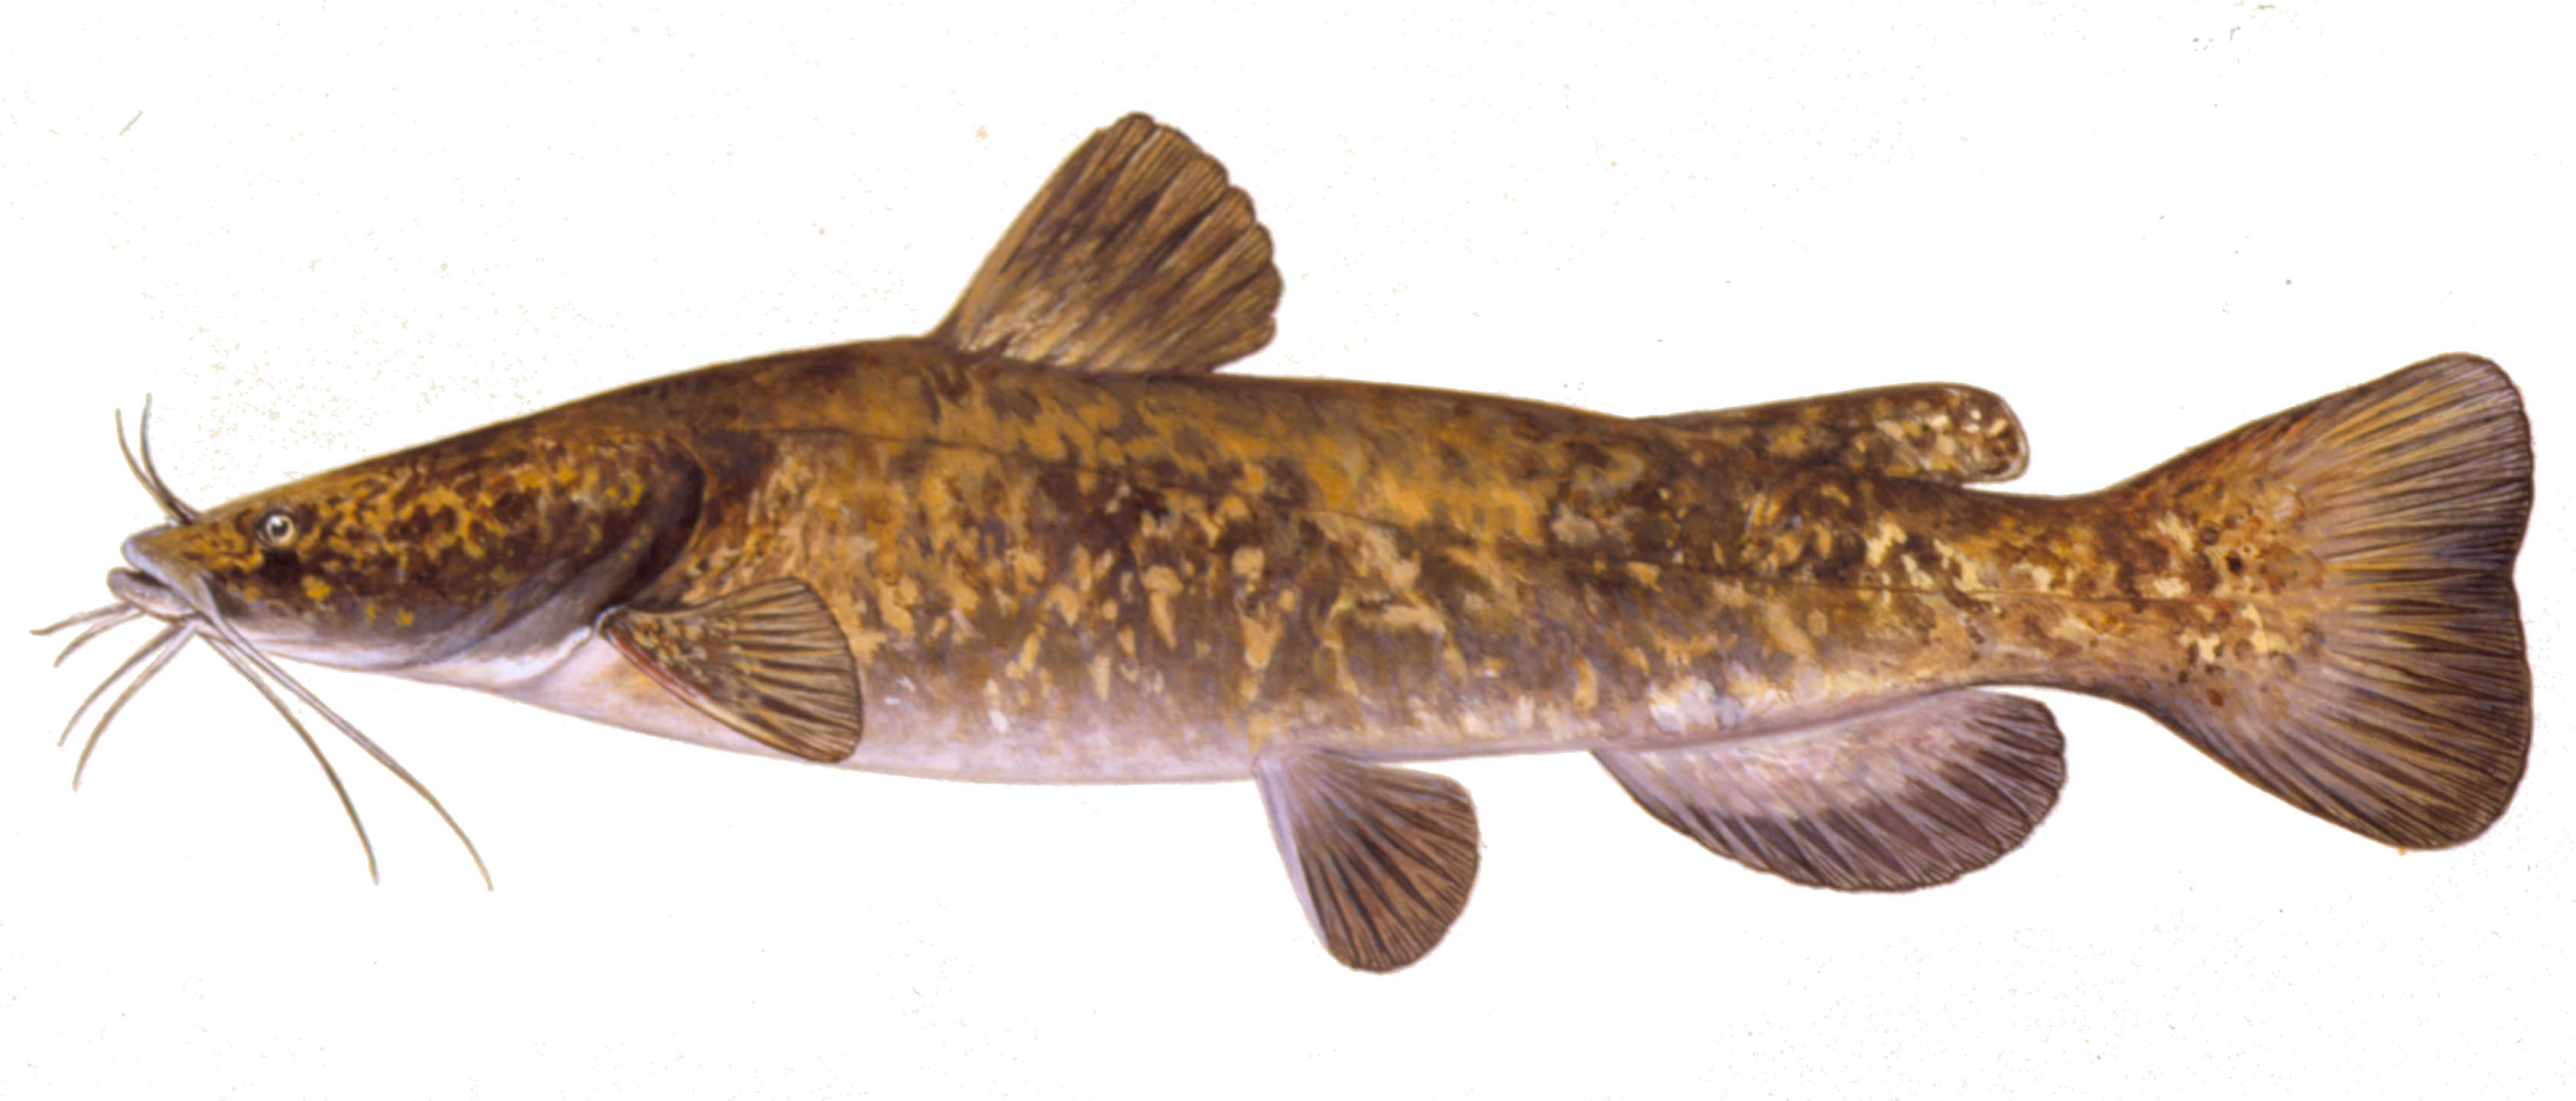 Details flathead catfish for Iowa fishing regulations